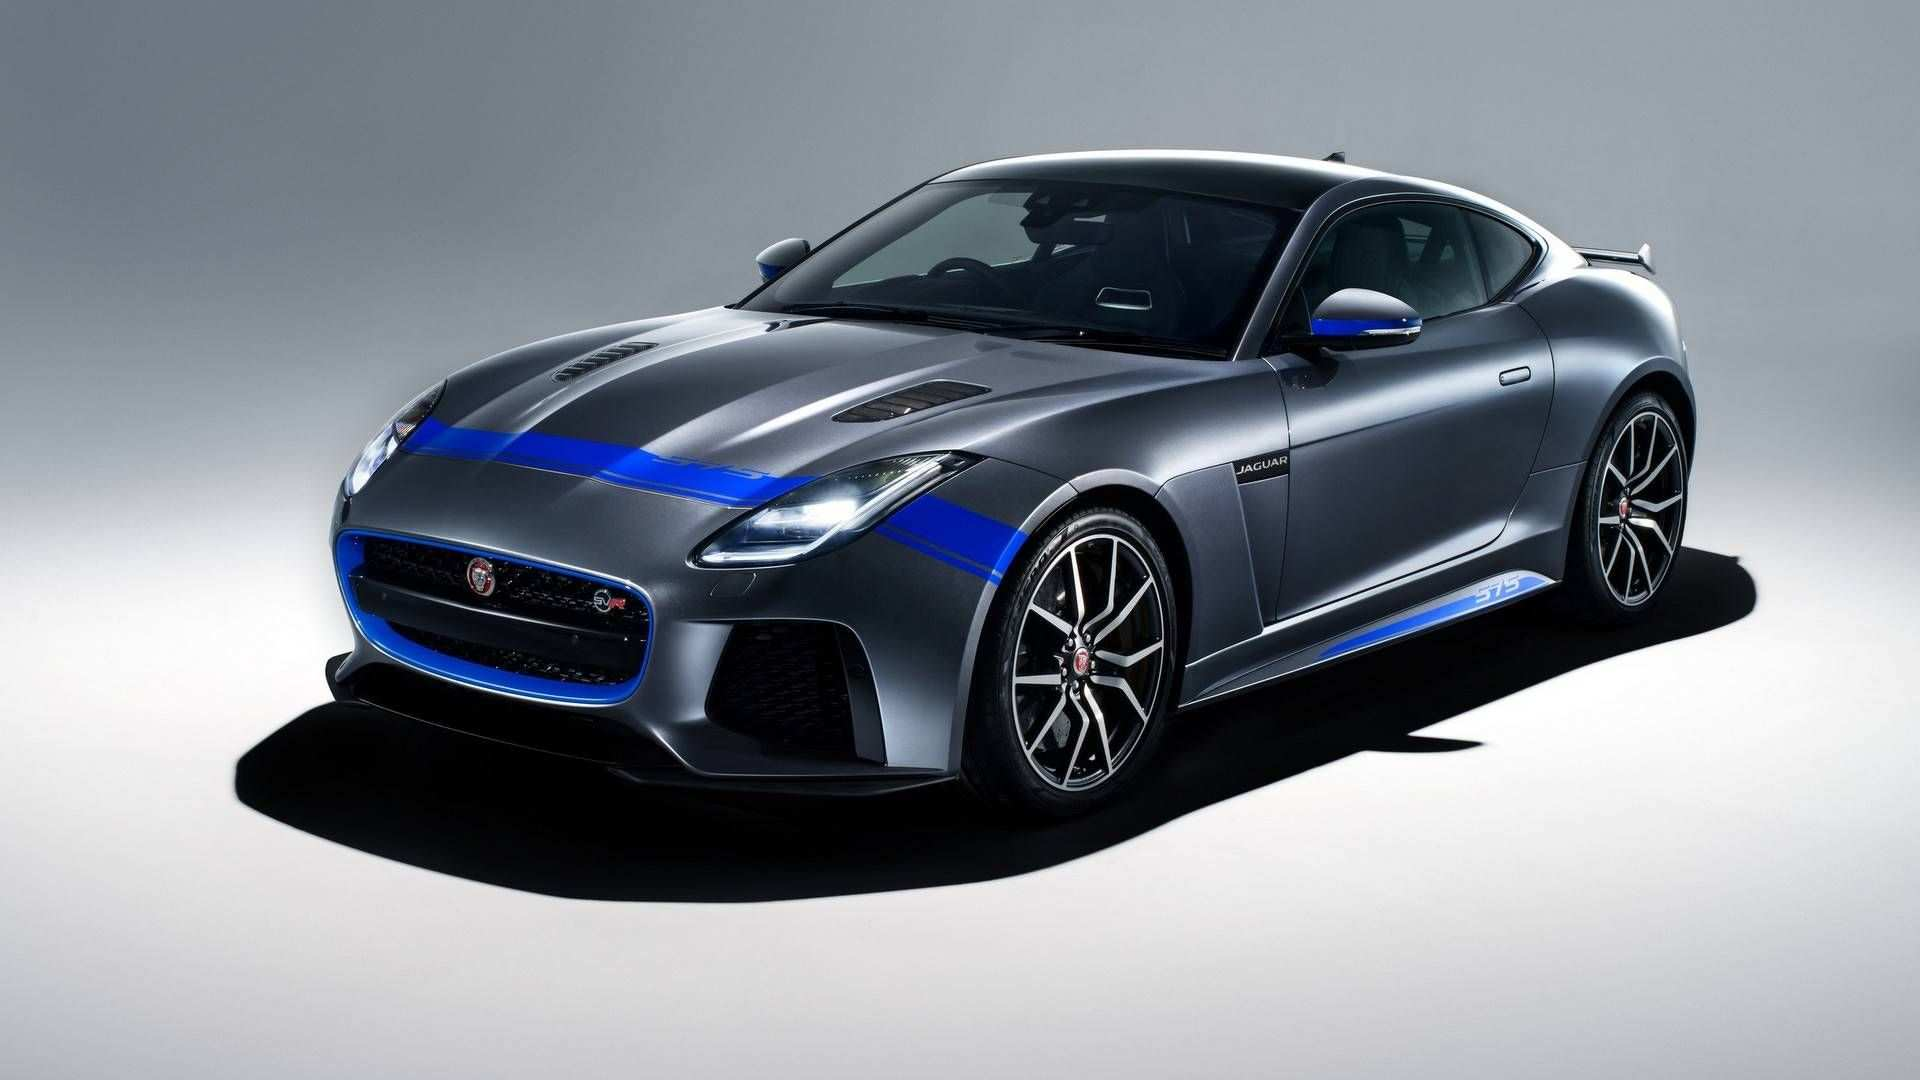 99 All New Jaguar F Type 2020 New Concept Concept for Jaguar F Type 2020 New Concept